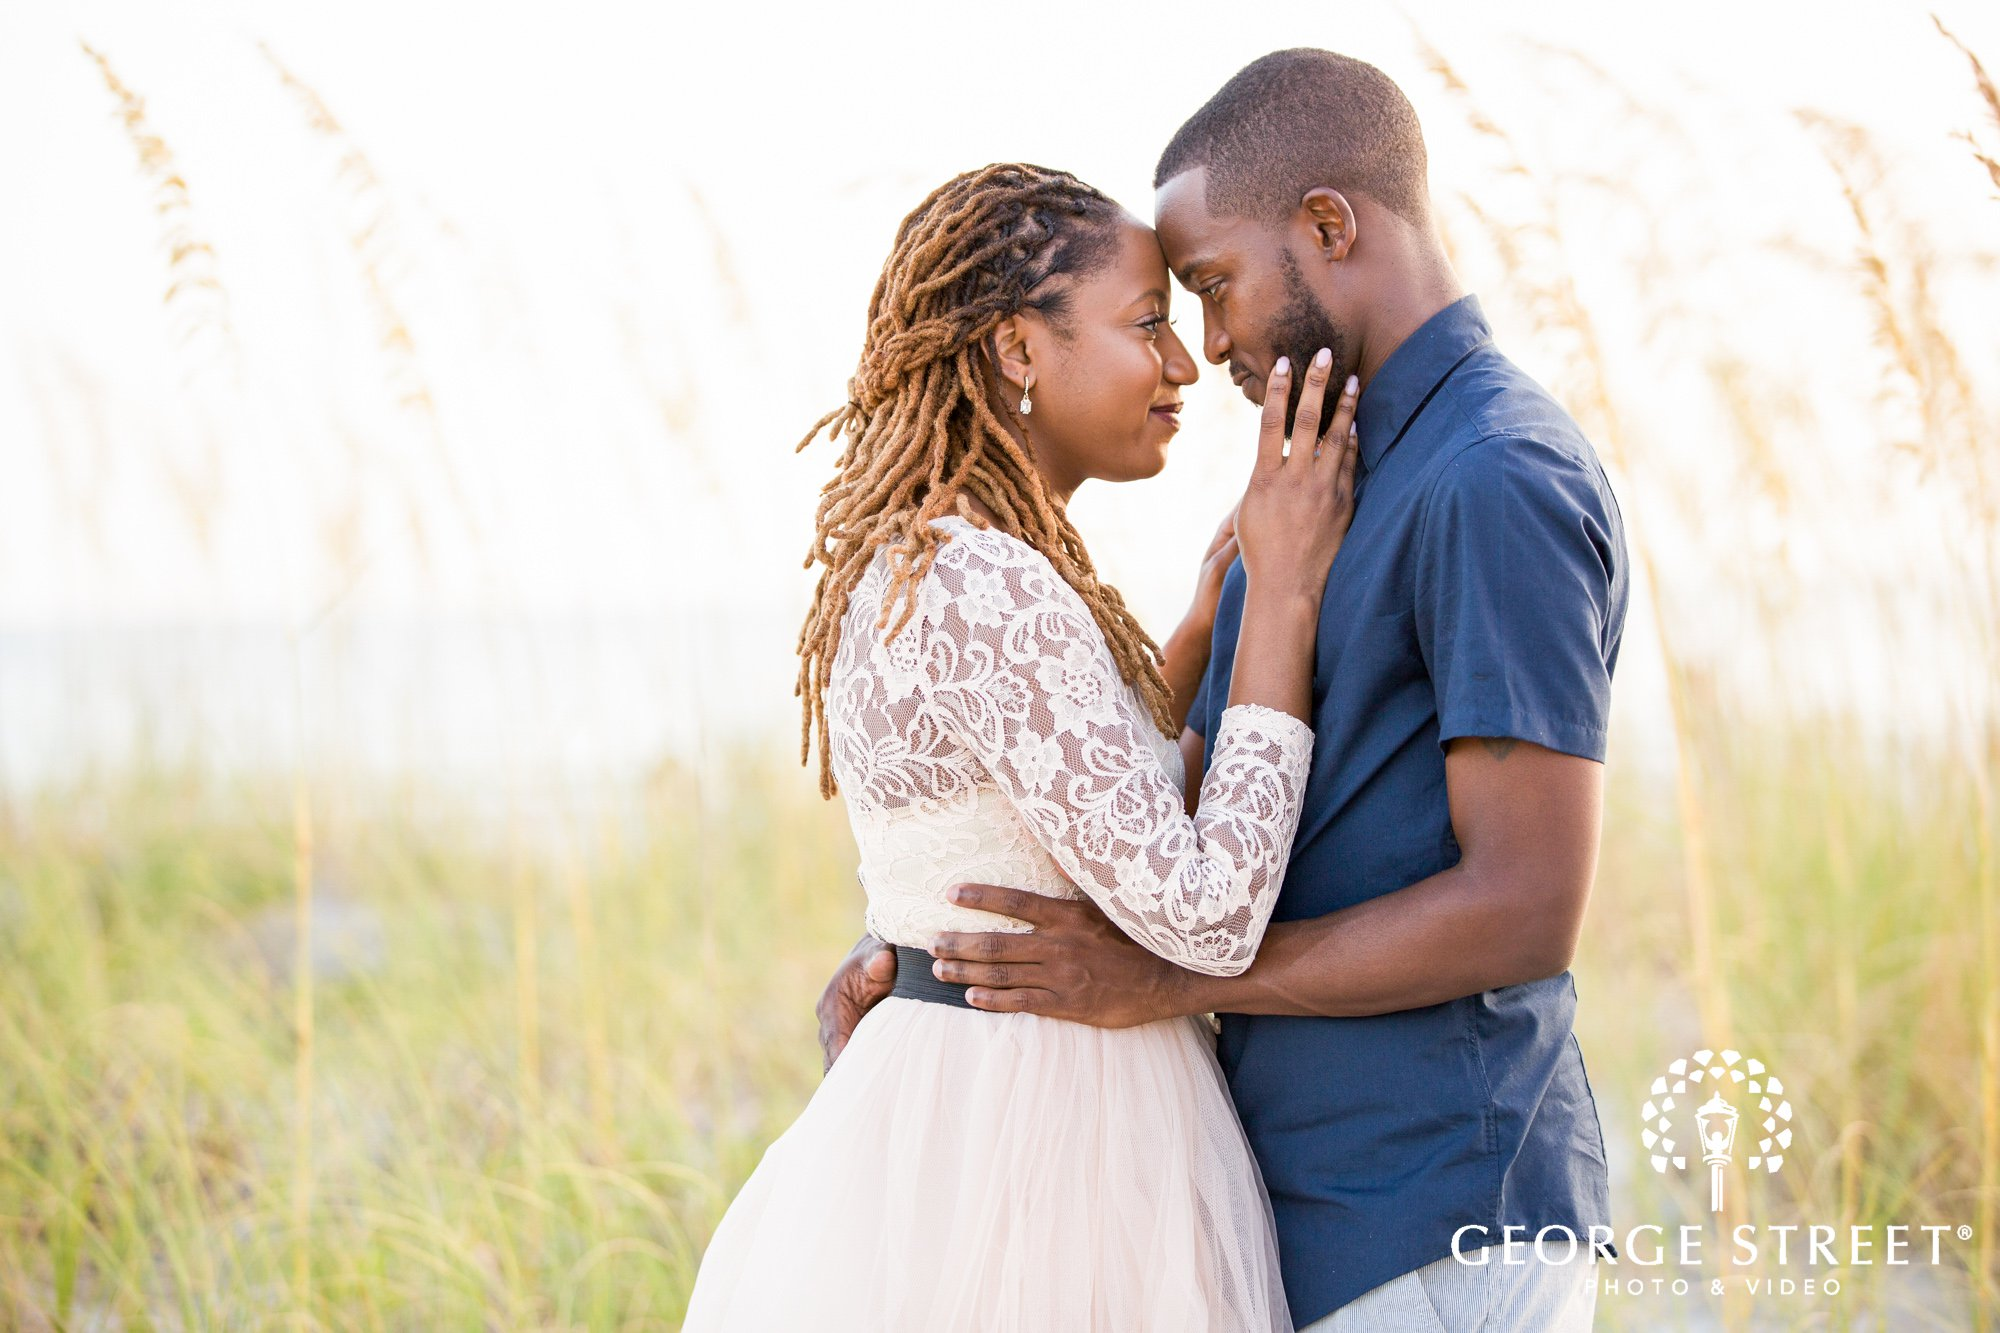 George Street's Top 4 Engagement Session Locations in Tampa